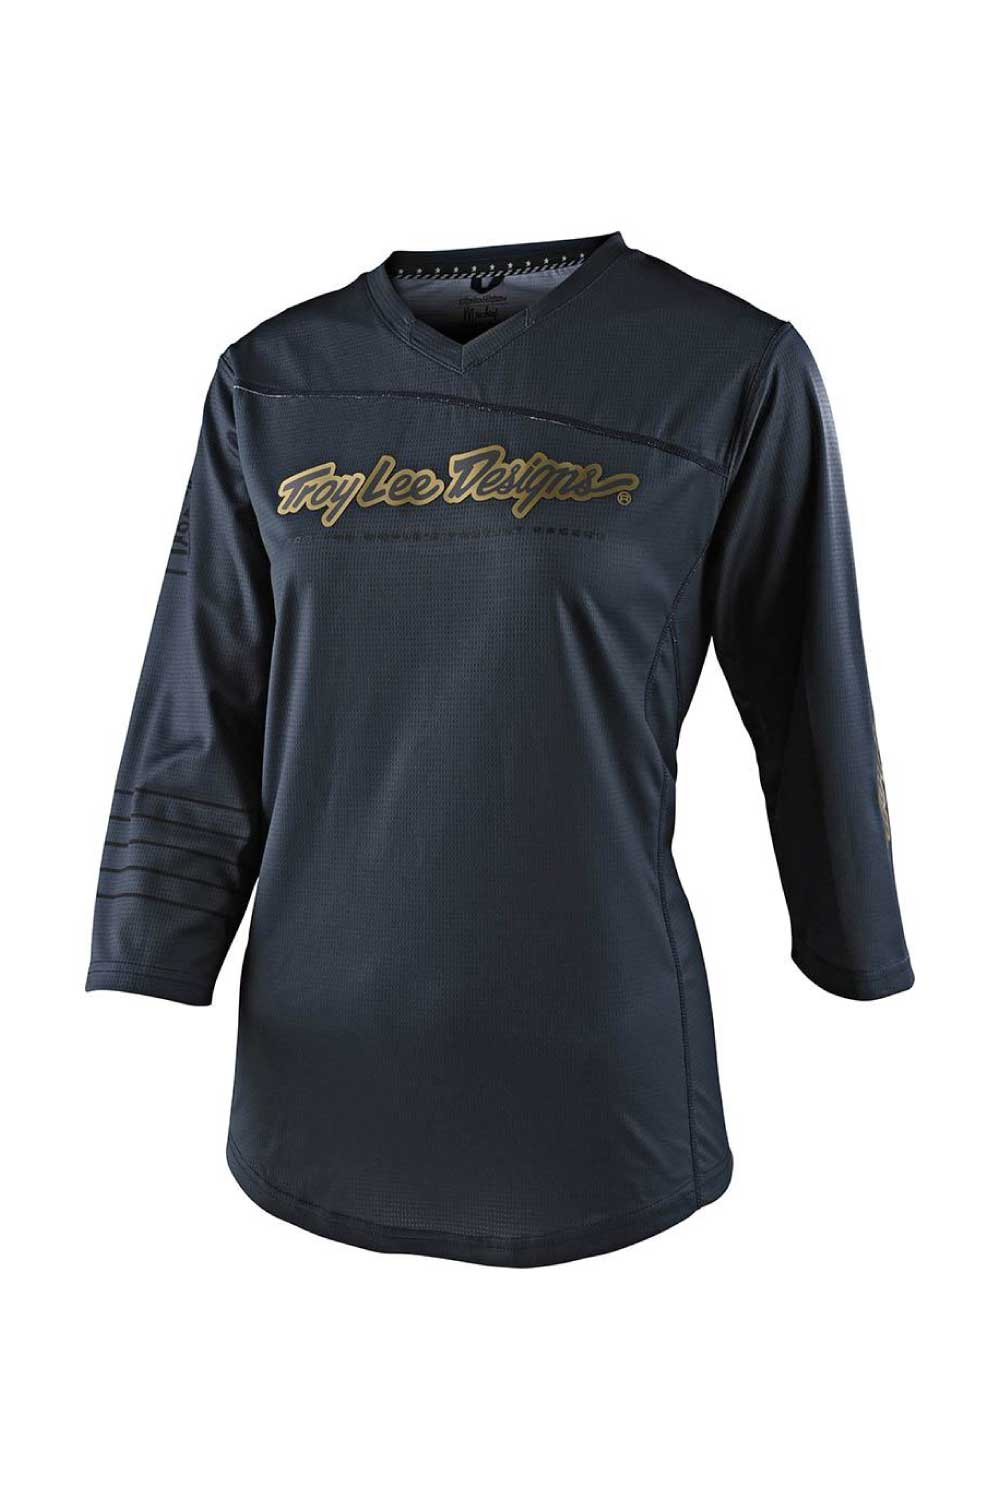 Troy Lee Designs 2020 Women's Mischief MTB Jersey